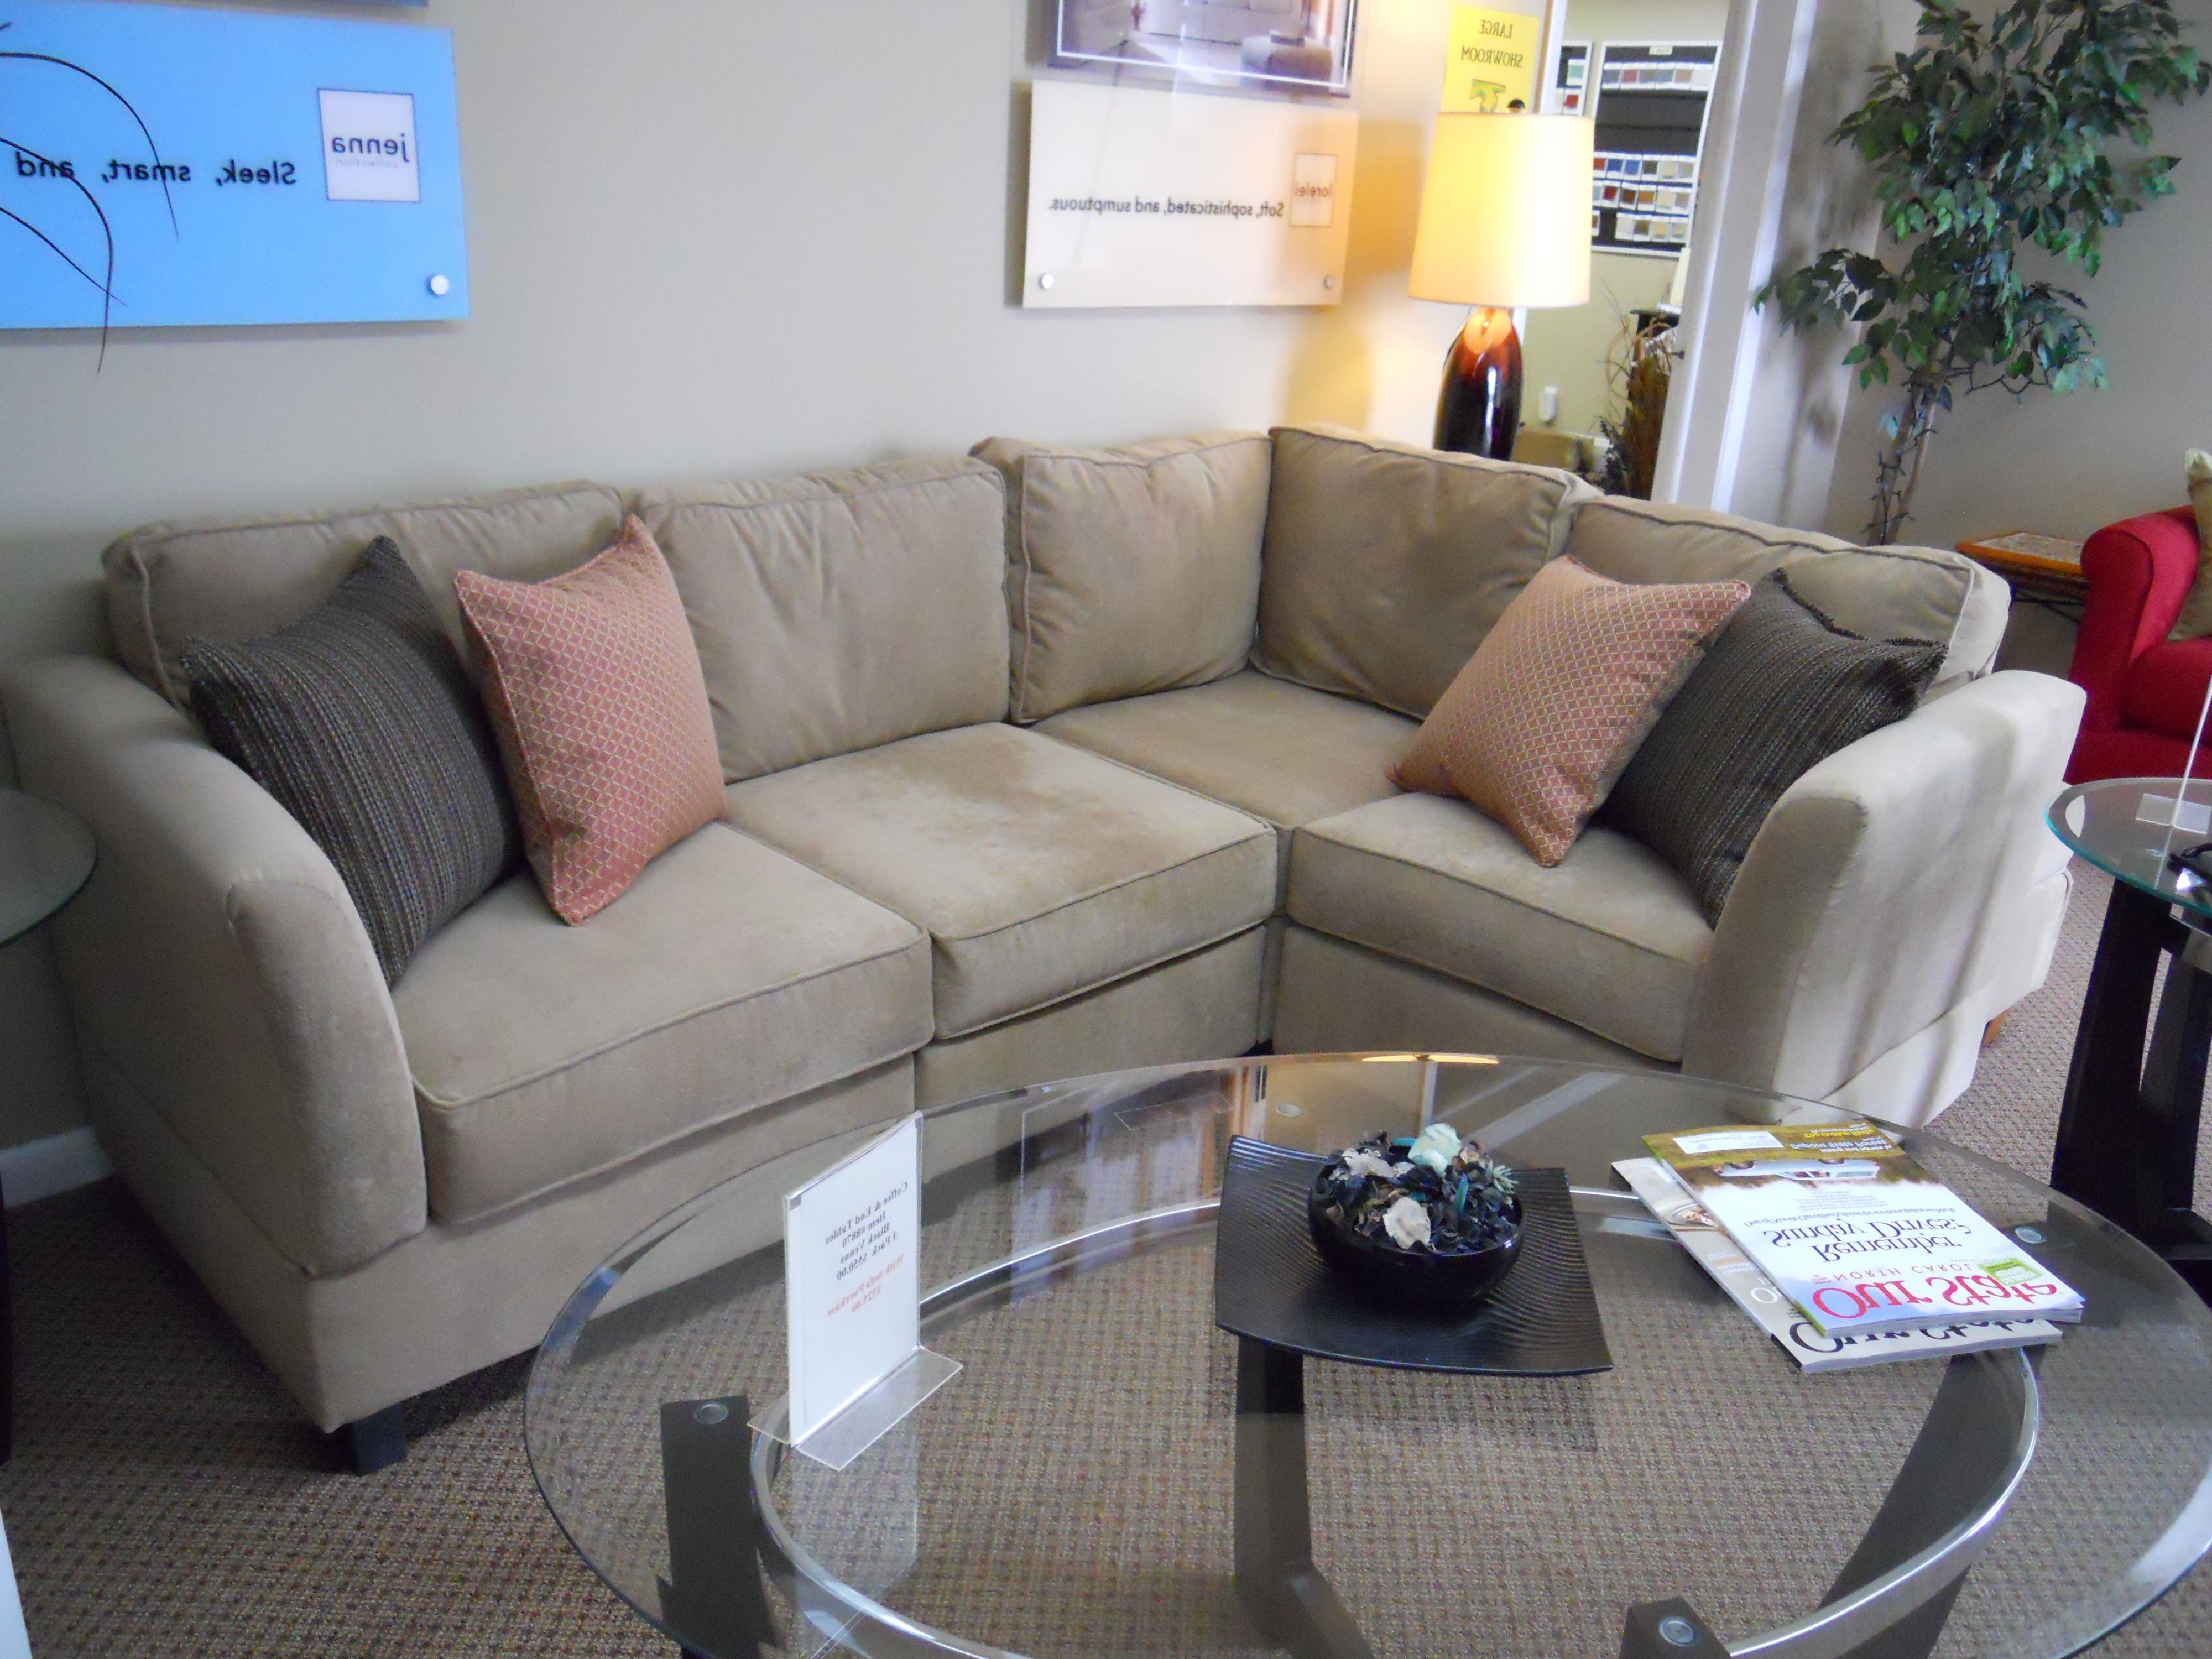 Fashionable Sectional Sofas In Canada Pertaining To Perfect Apartment Sectional Sofa 51 Contemporary Sofa Inspiration (View 10 of 20)